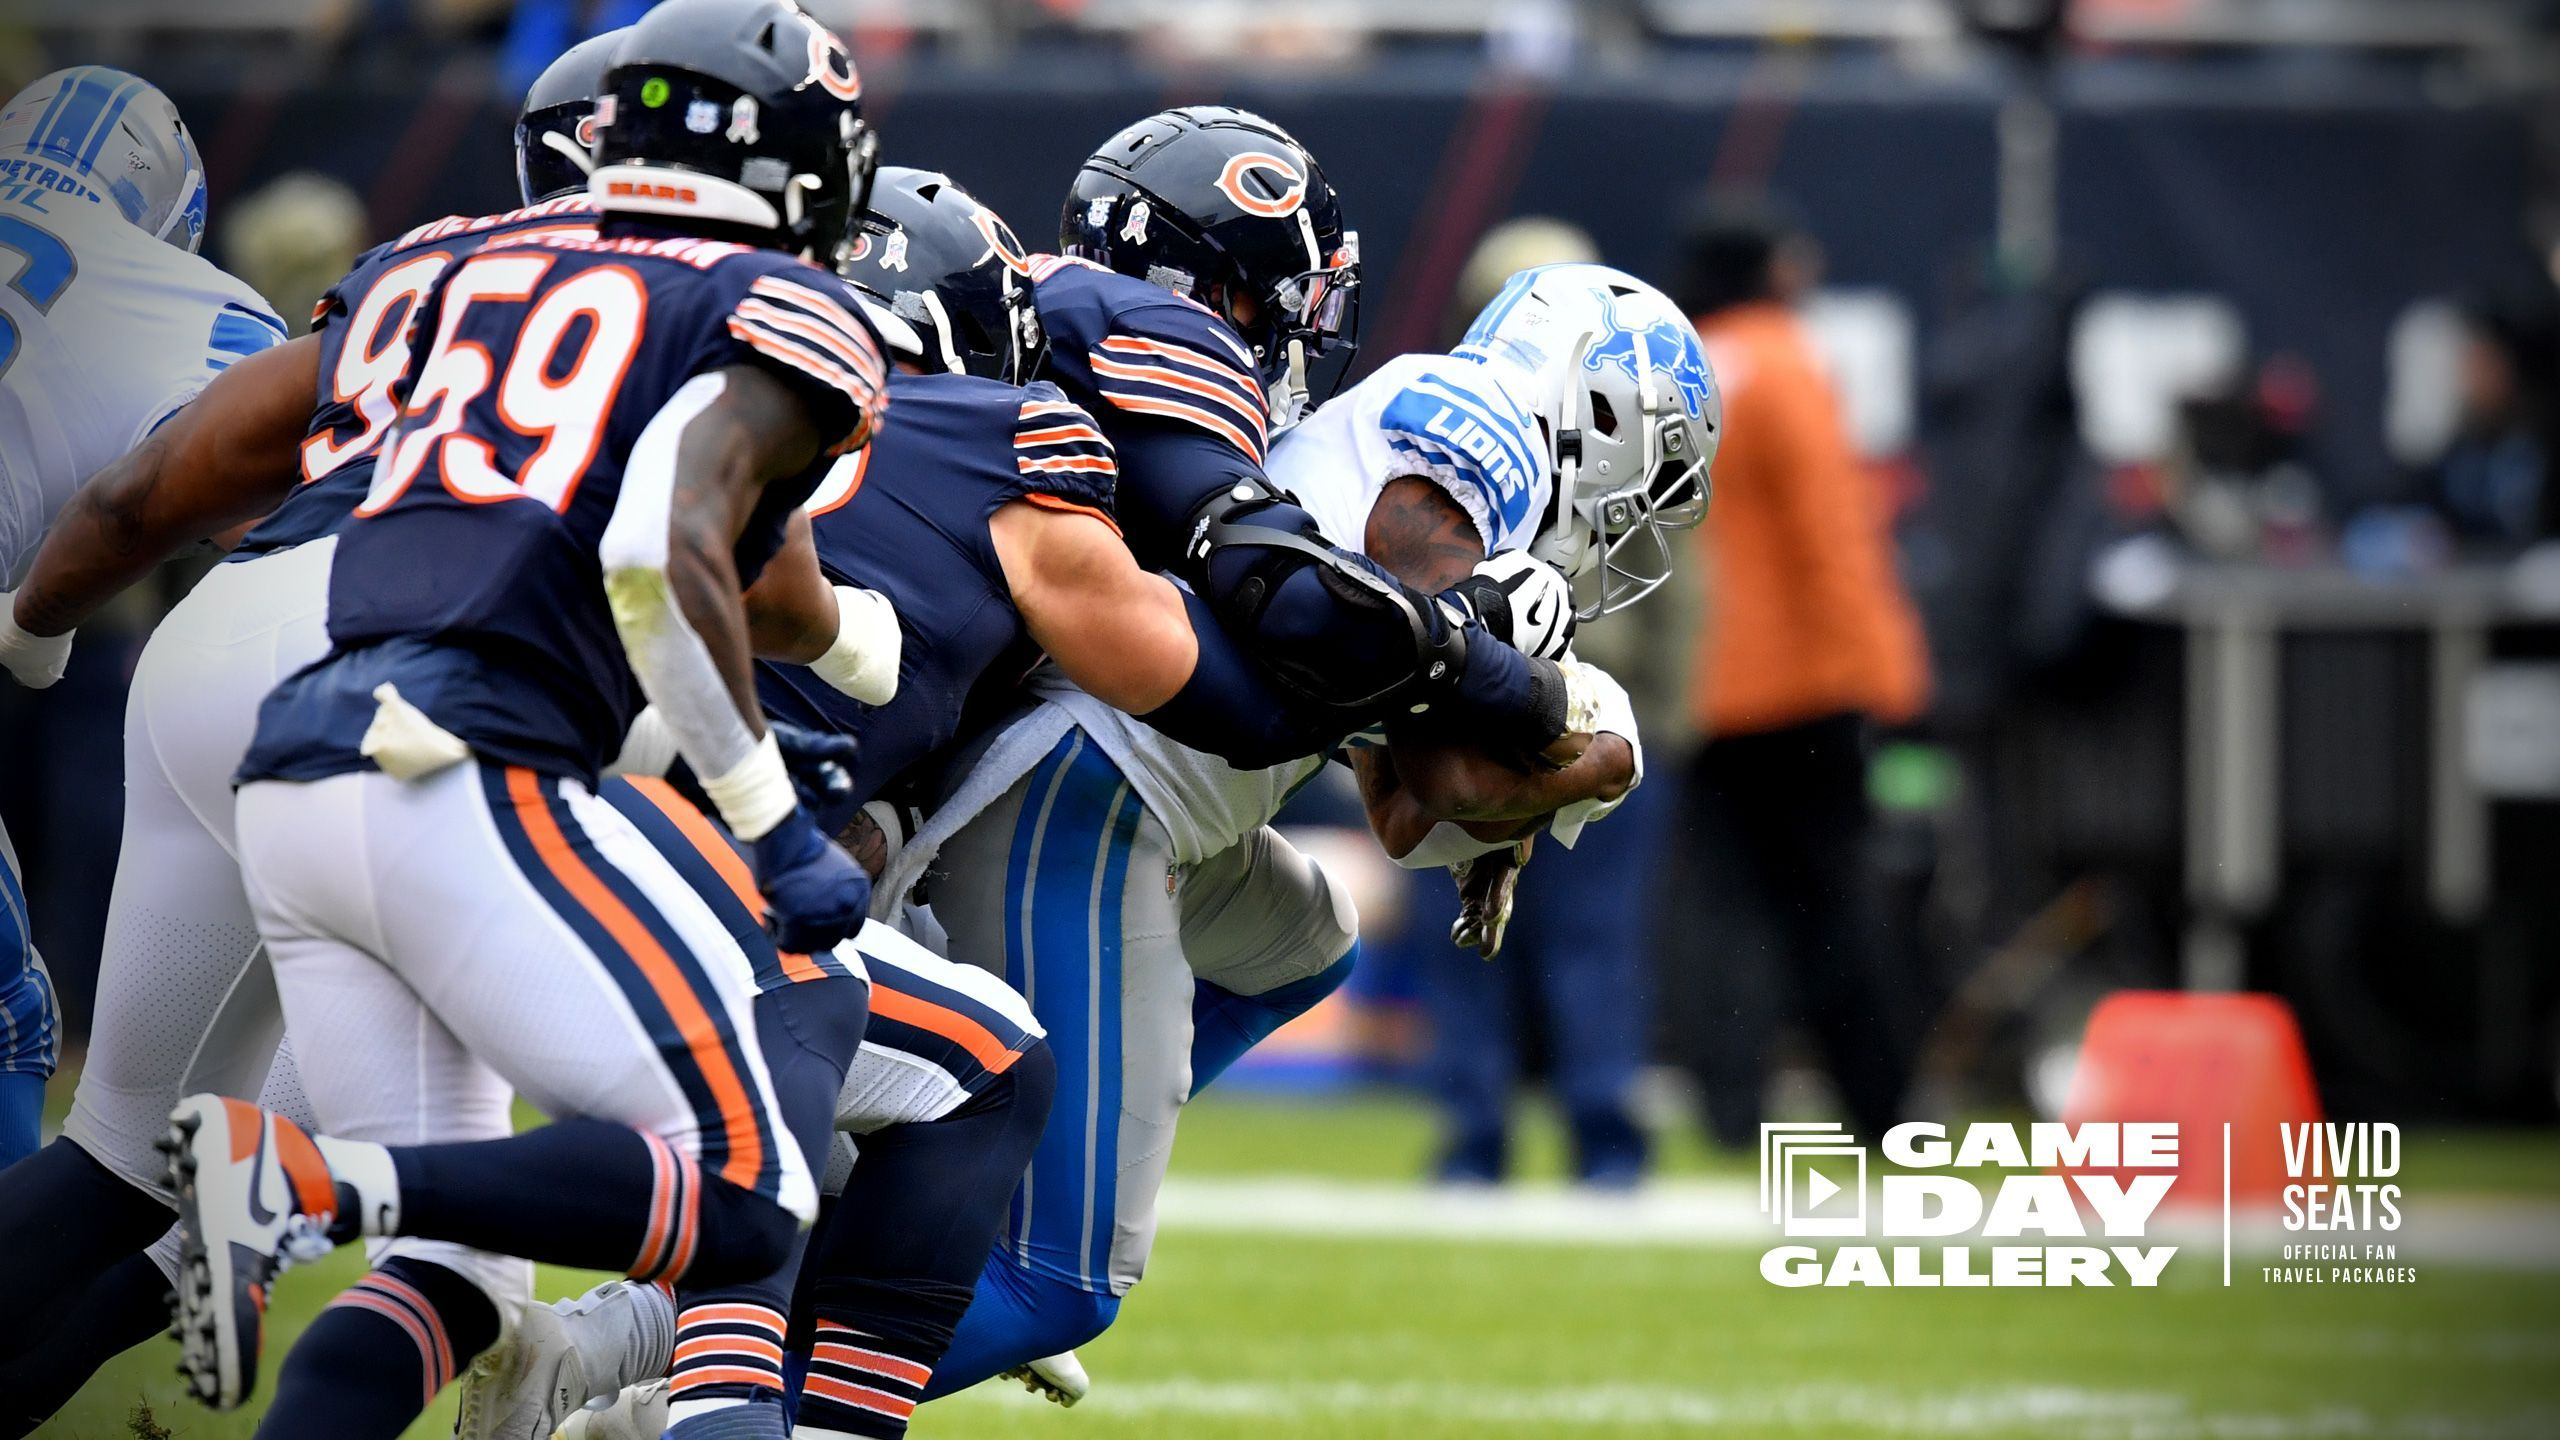 Gameday Gallery Lions At Bears With Images Chicago Sports Teams Gameday Chicago Bears Football